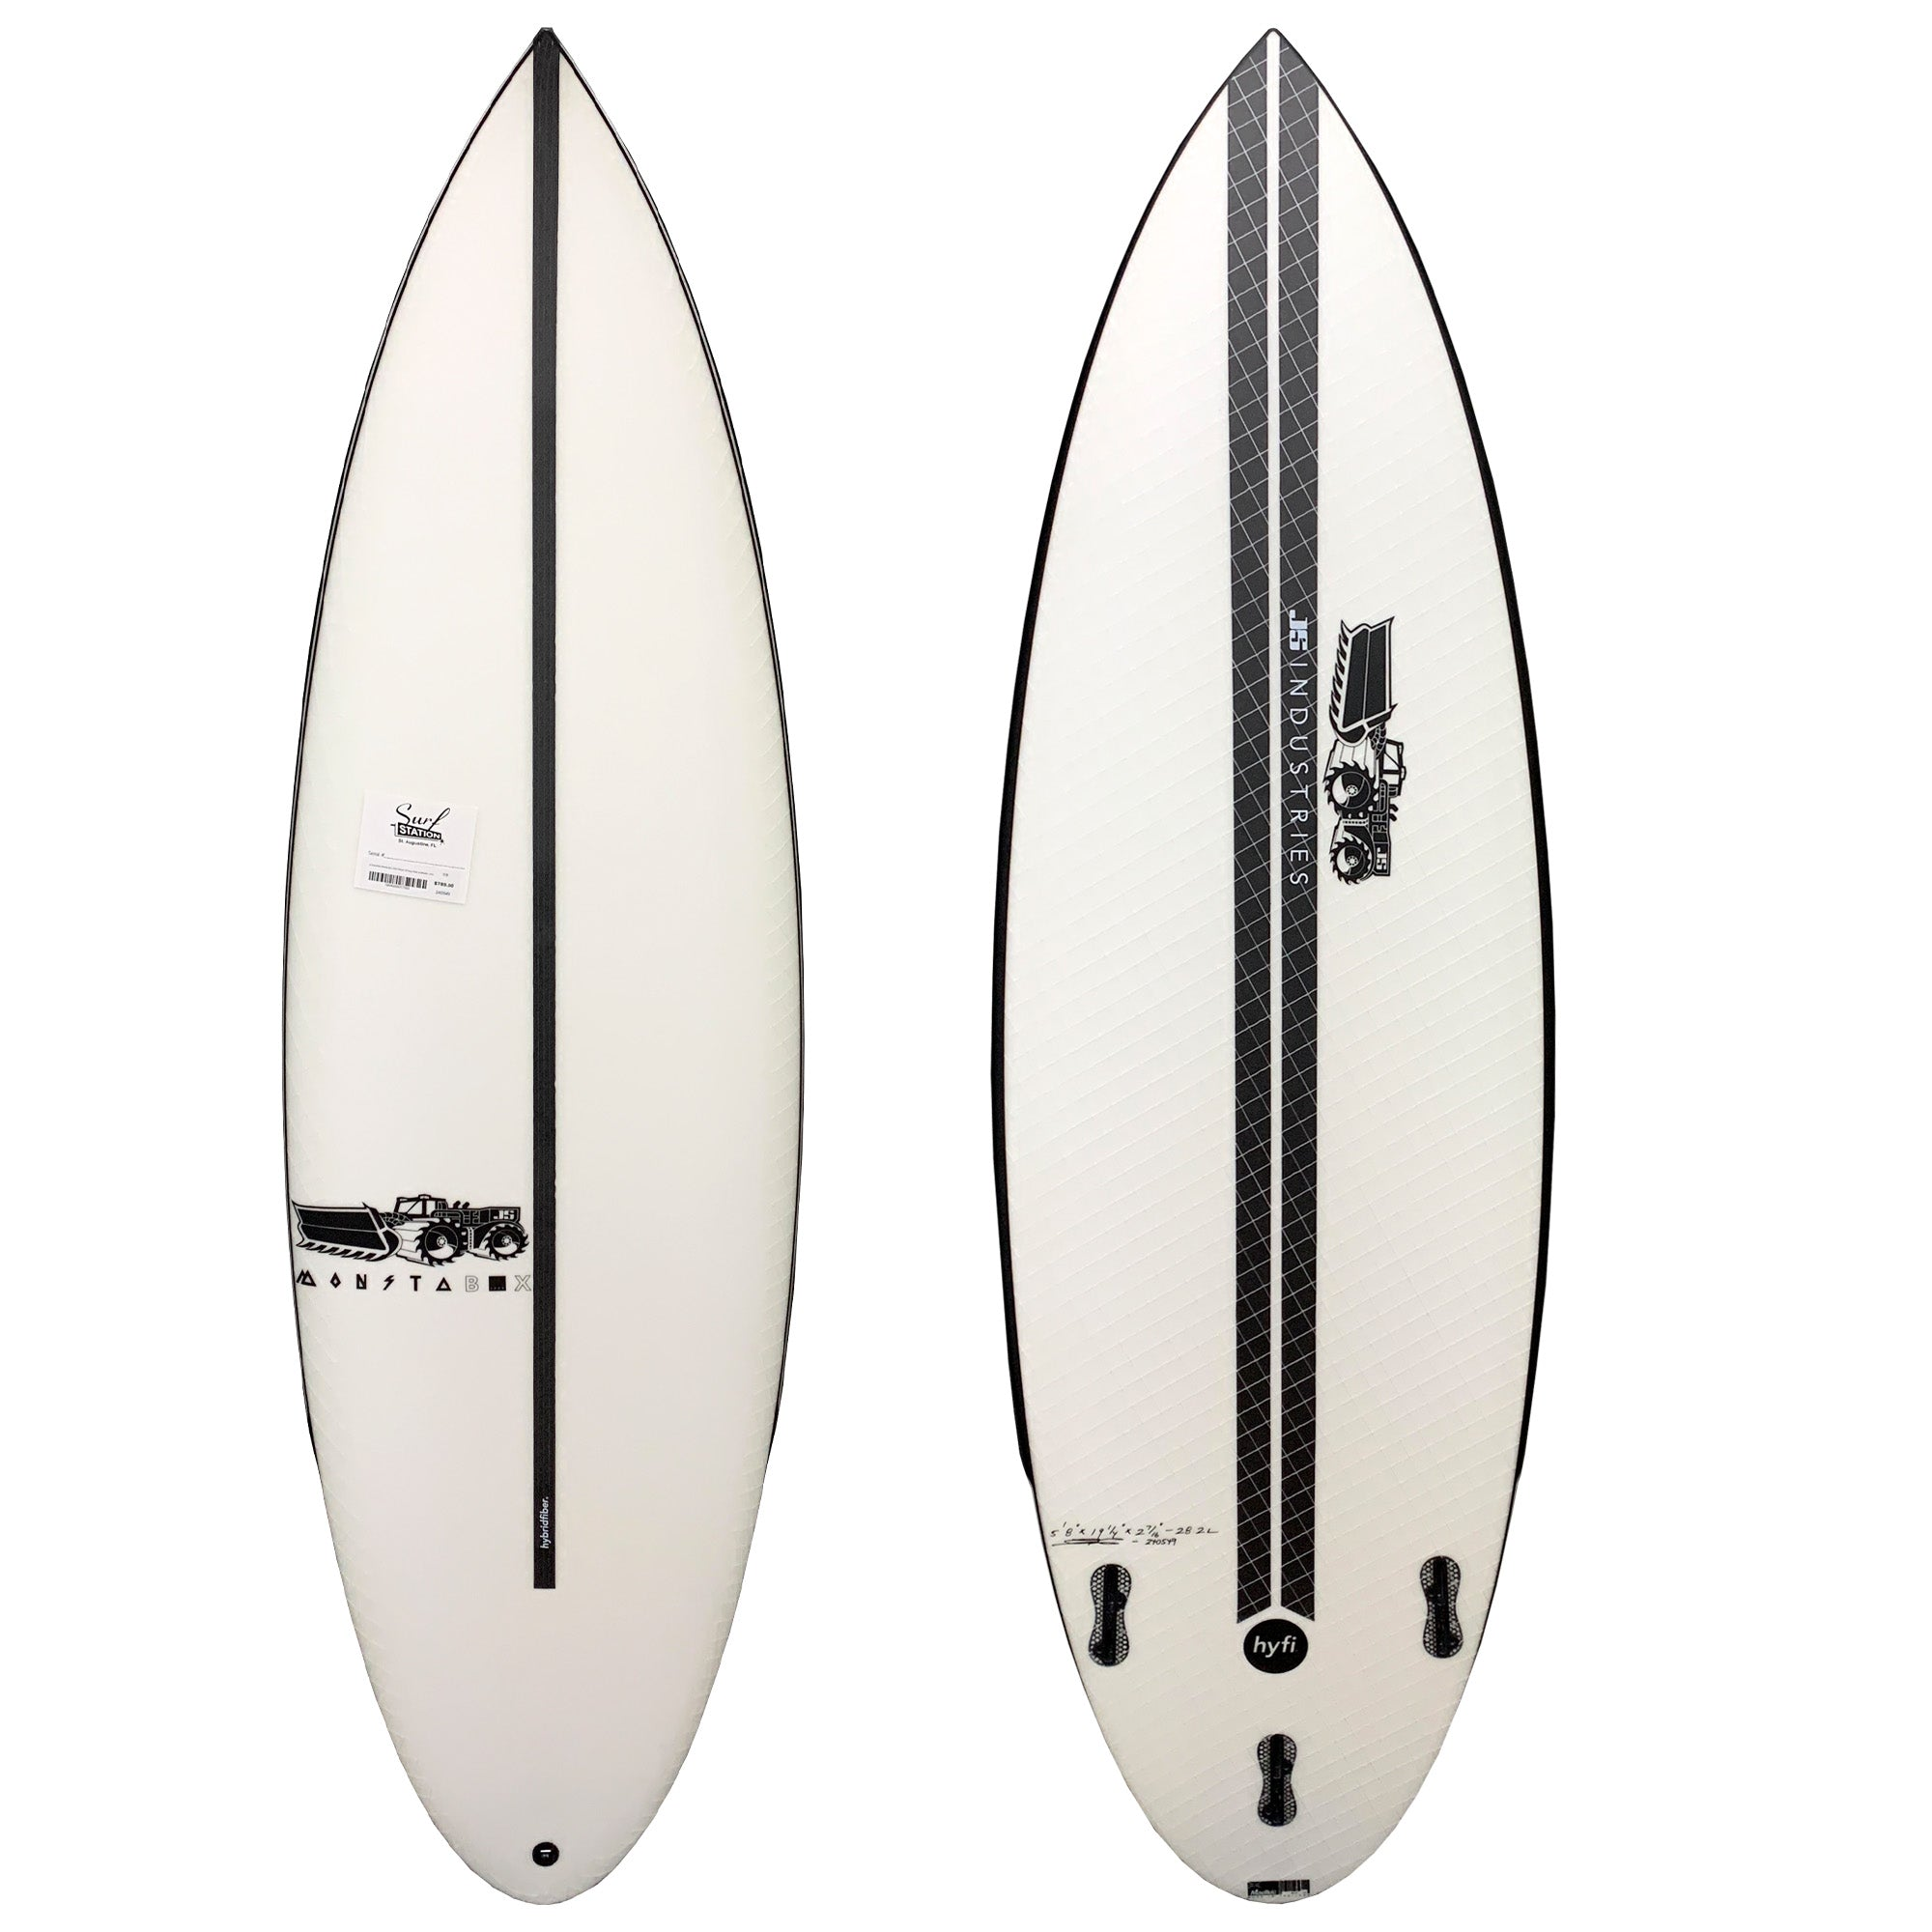 JS Industries Monsta Box 2020 Round Tail Easy Rider Surfboard - HYFI